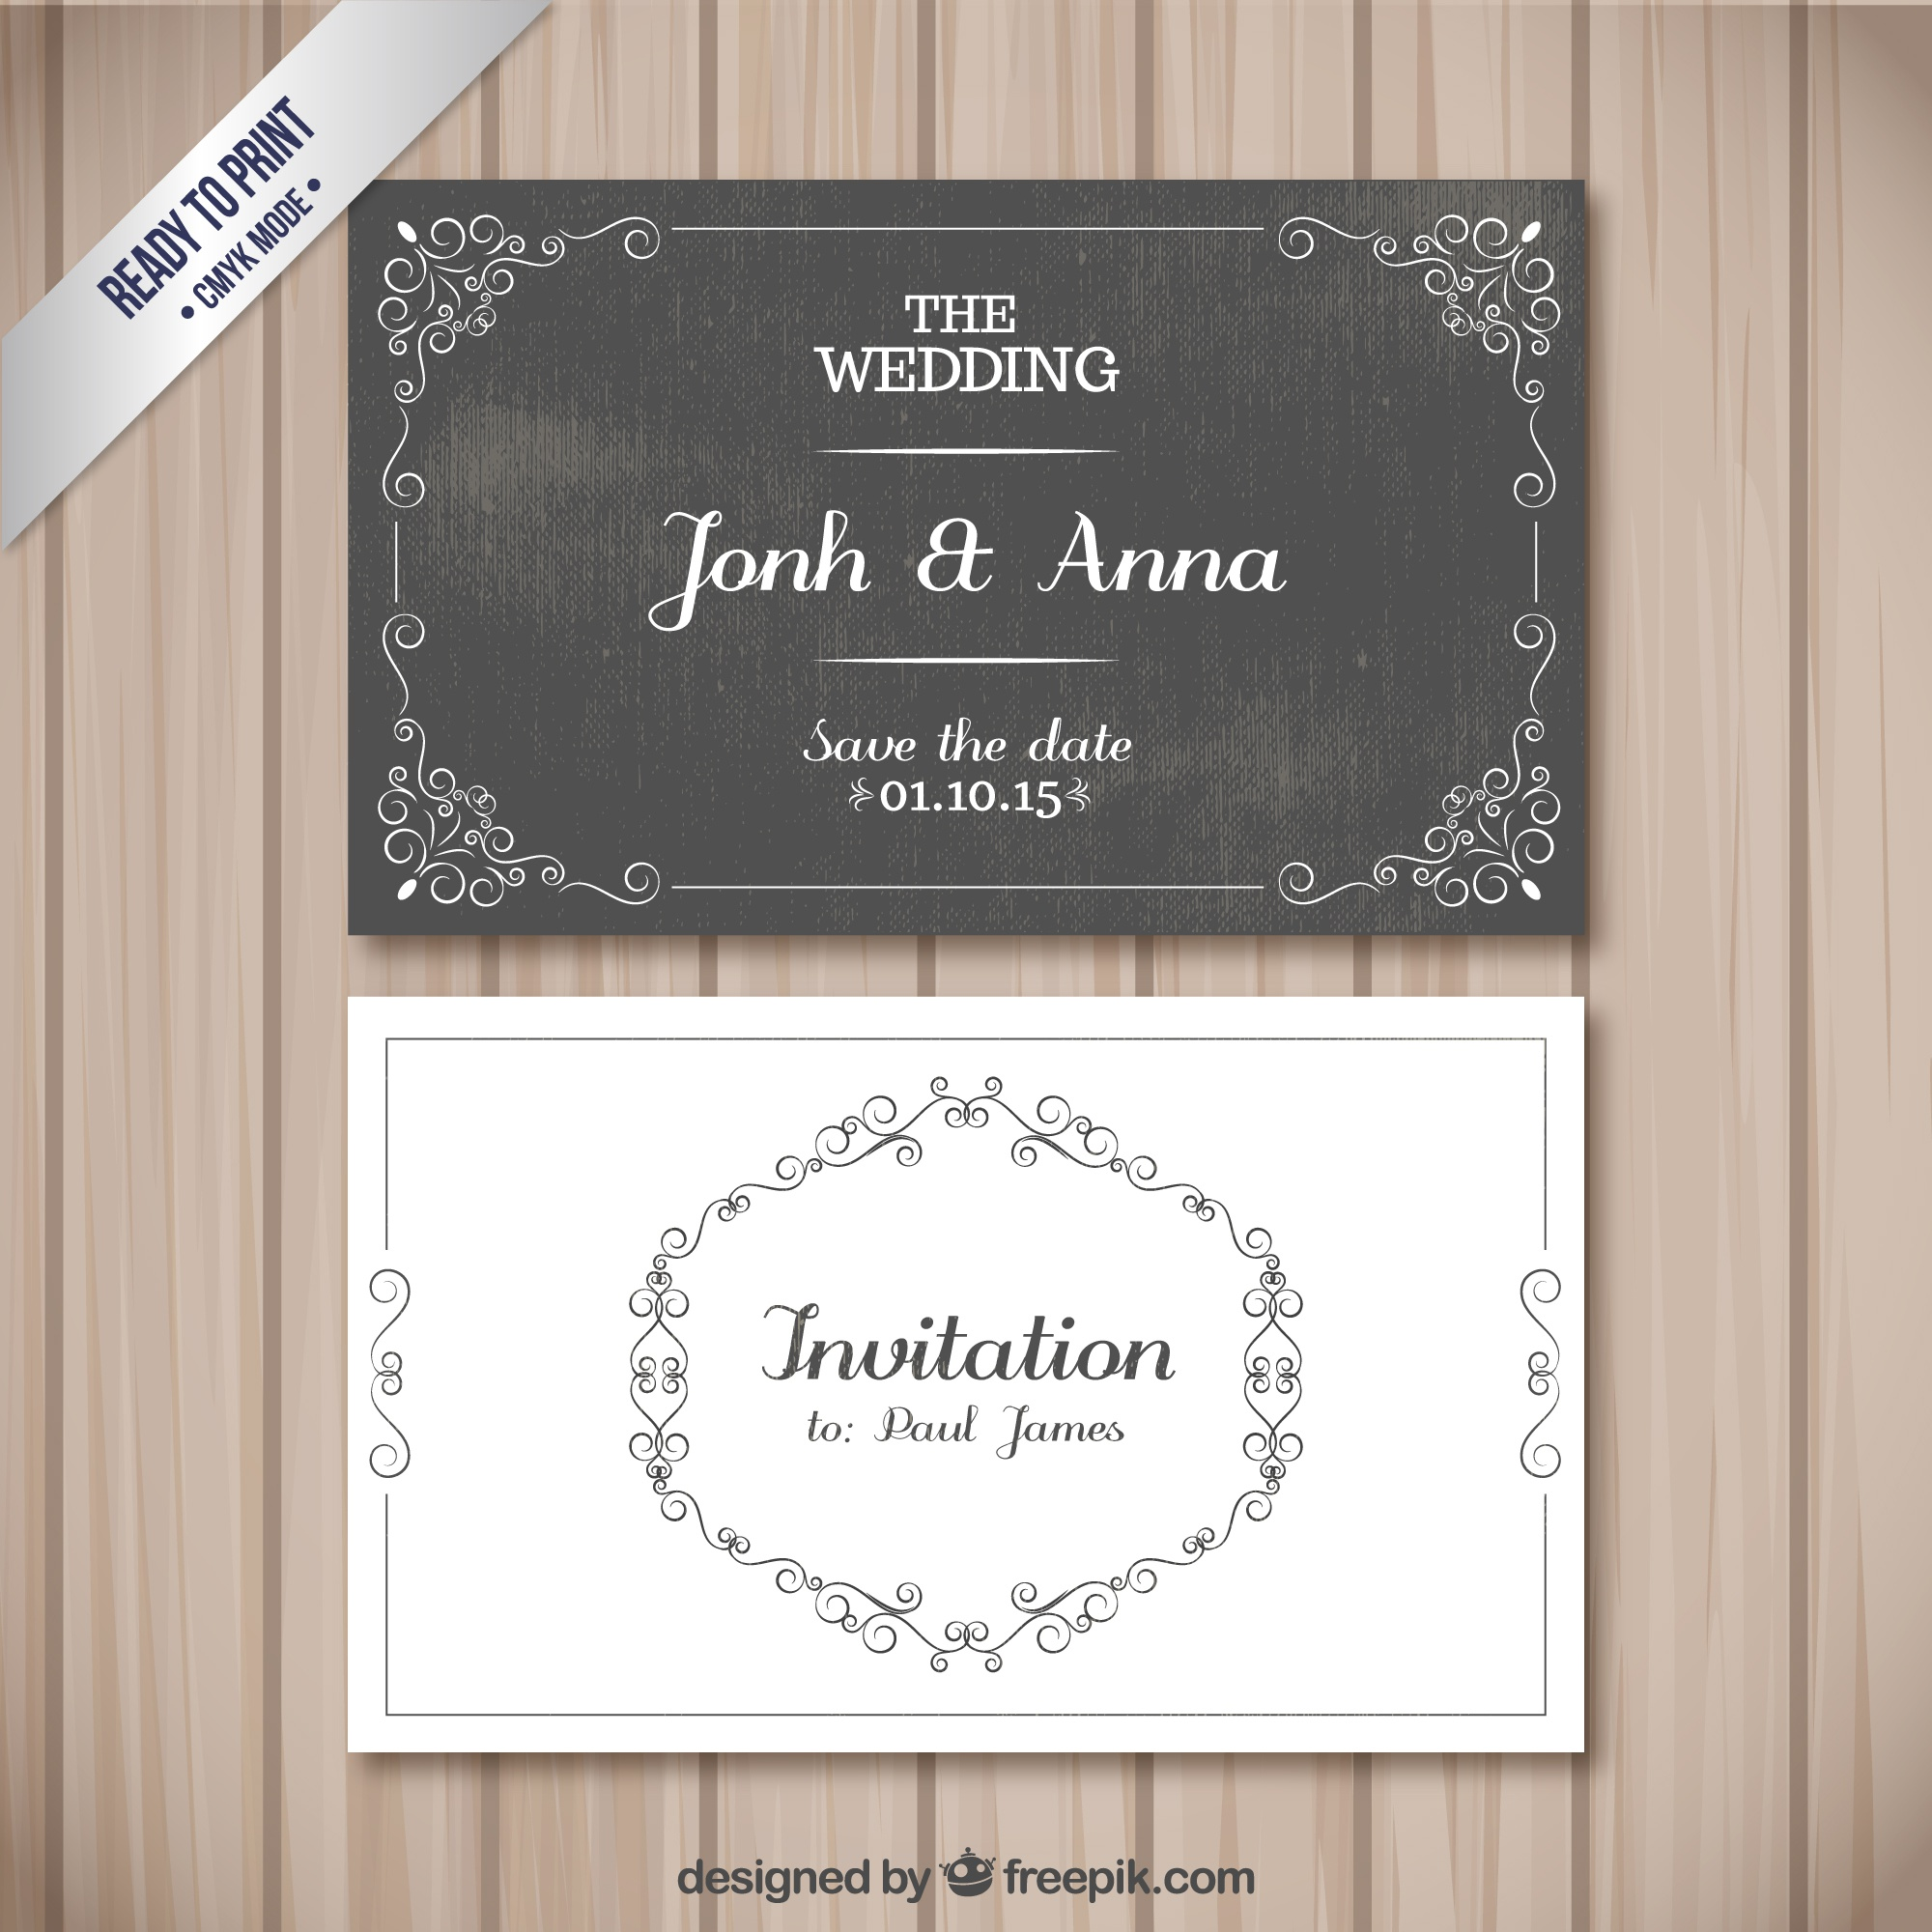 Retro wedding cards